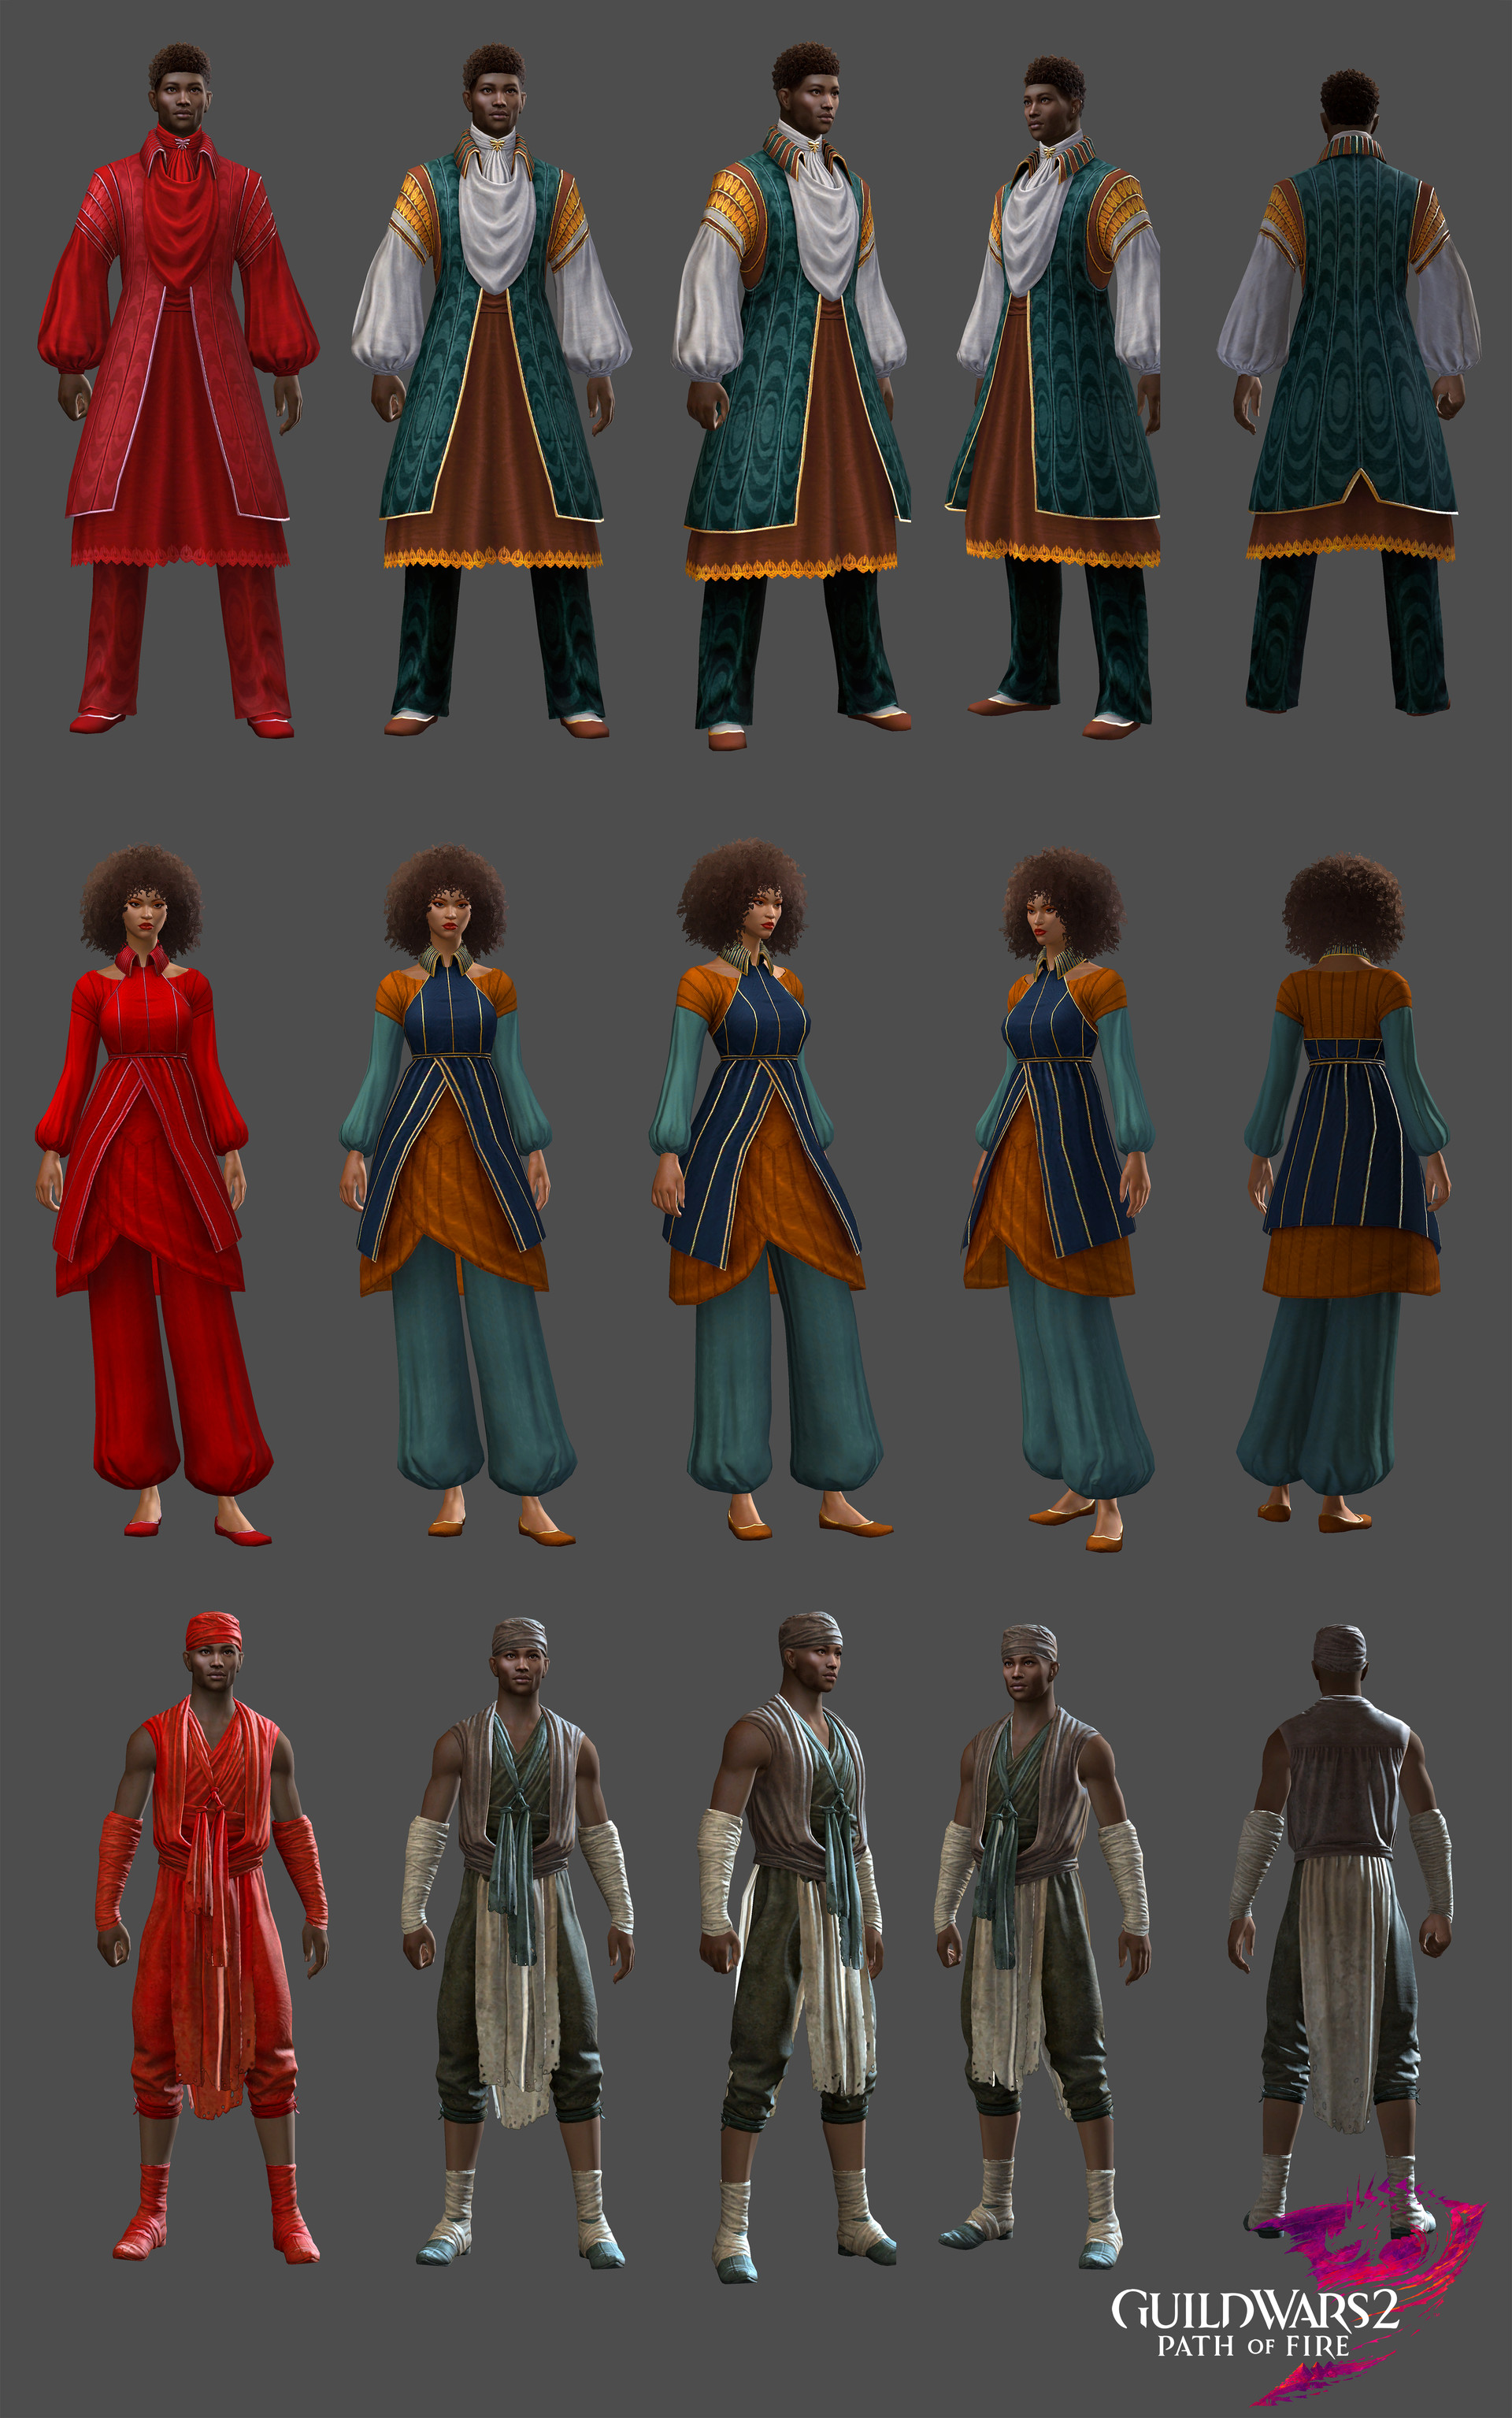 ArtStation - Outfits GW2 - Path of Fire, Vanessa Le